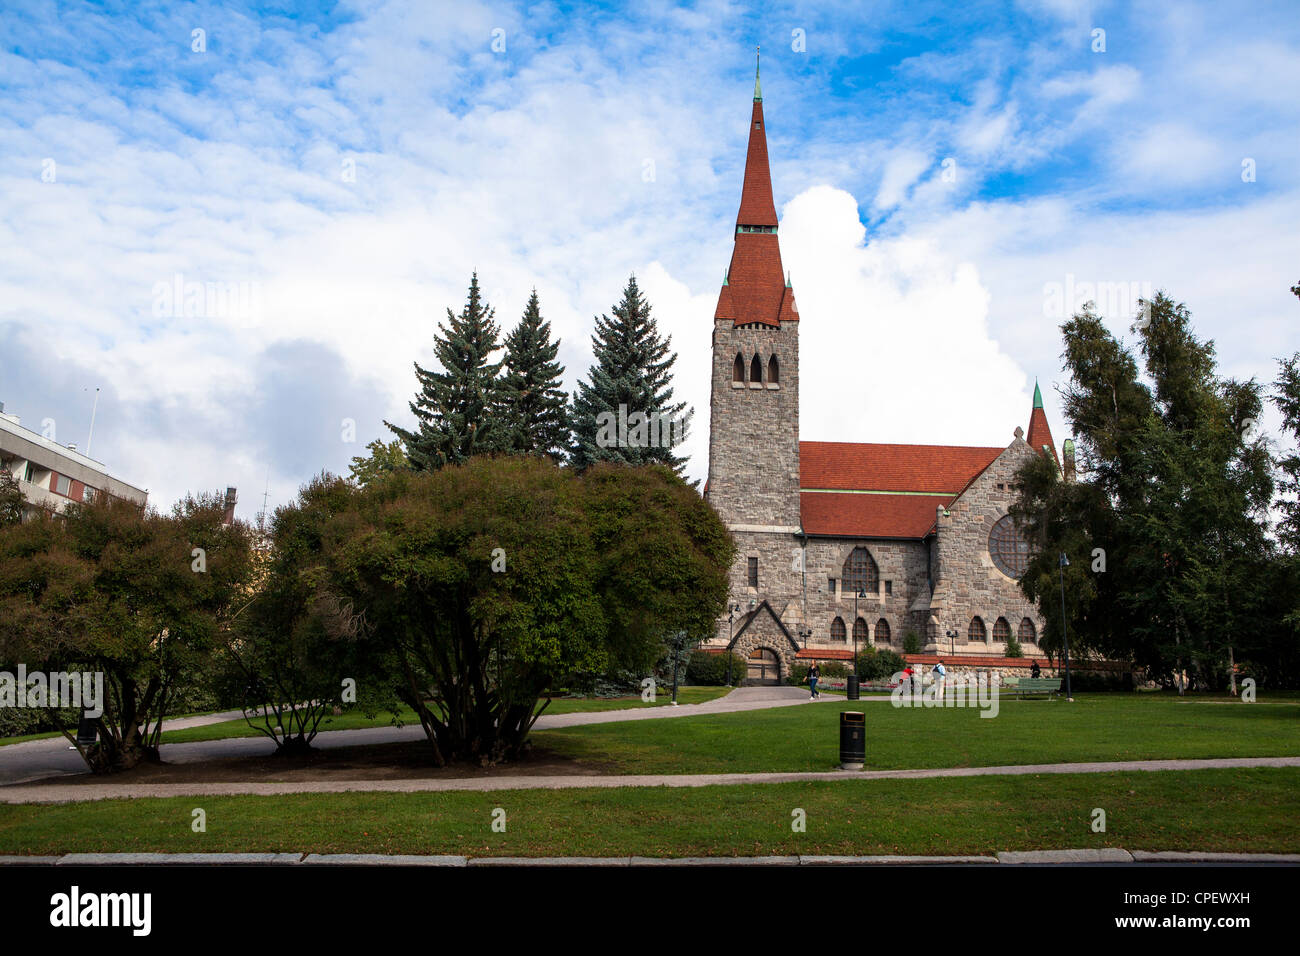 Tampere cathedral Finland Scandinavia - Stock Image